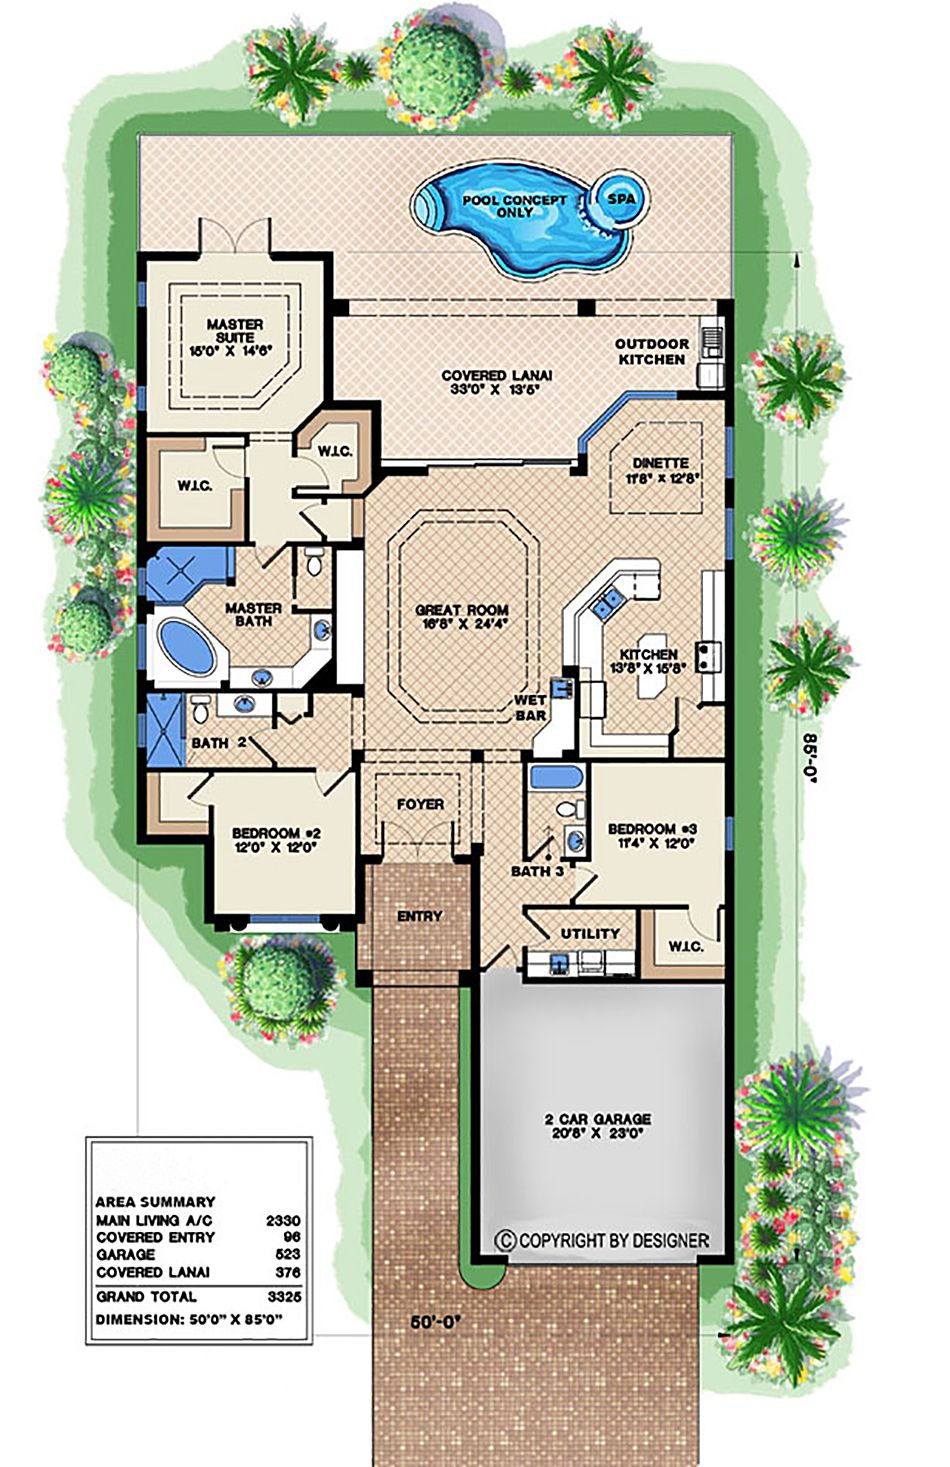 021294 | Narrow house plans, Coastal house plans, Florida house plans